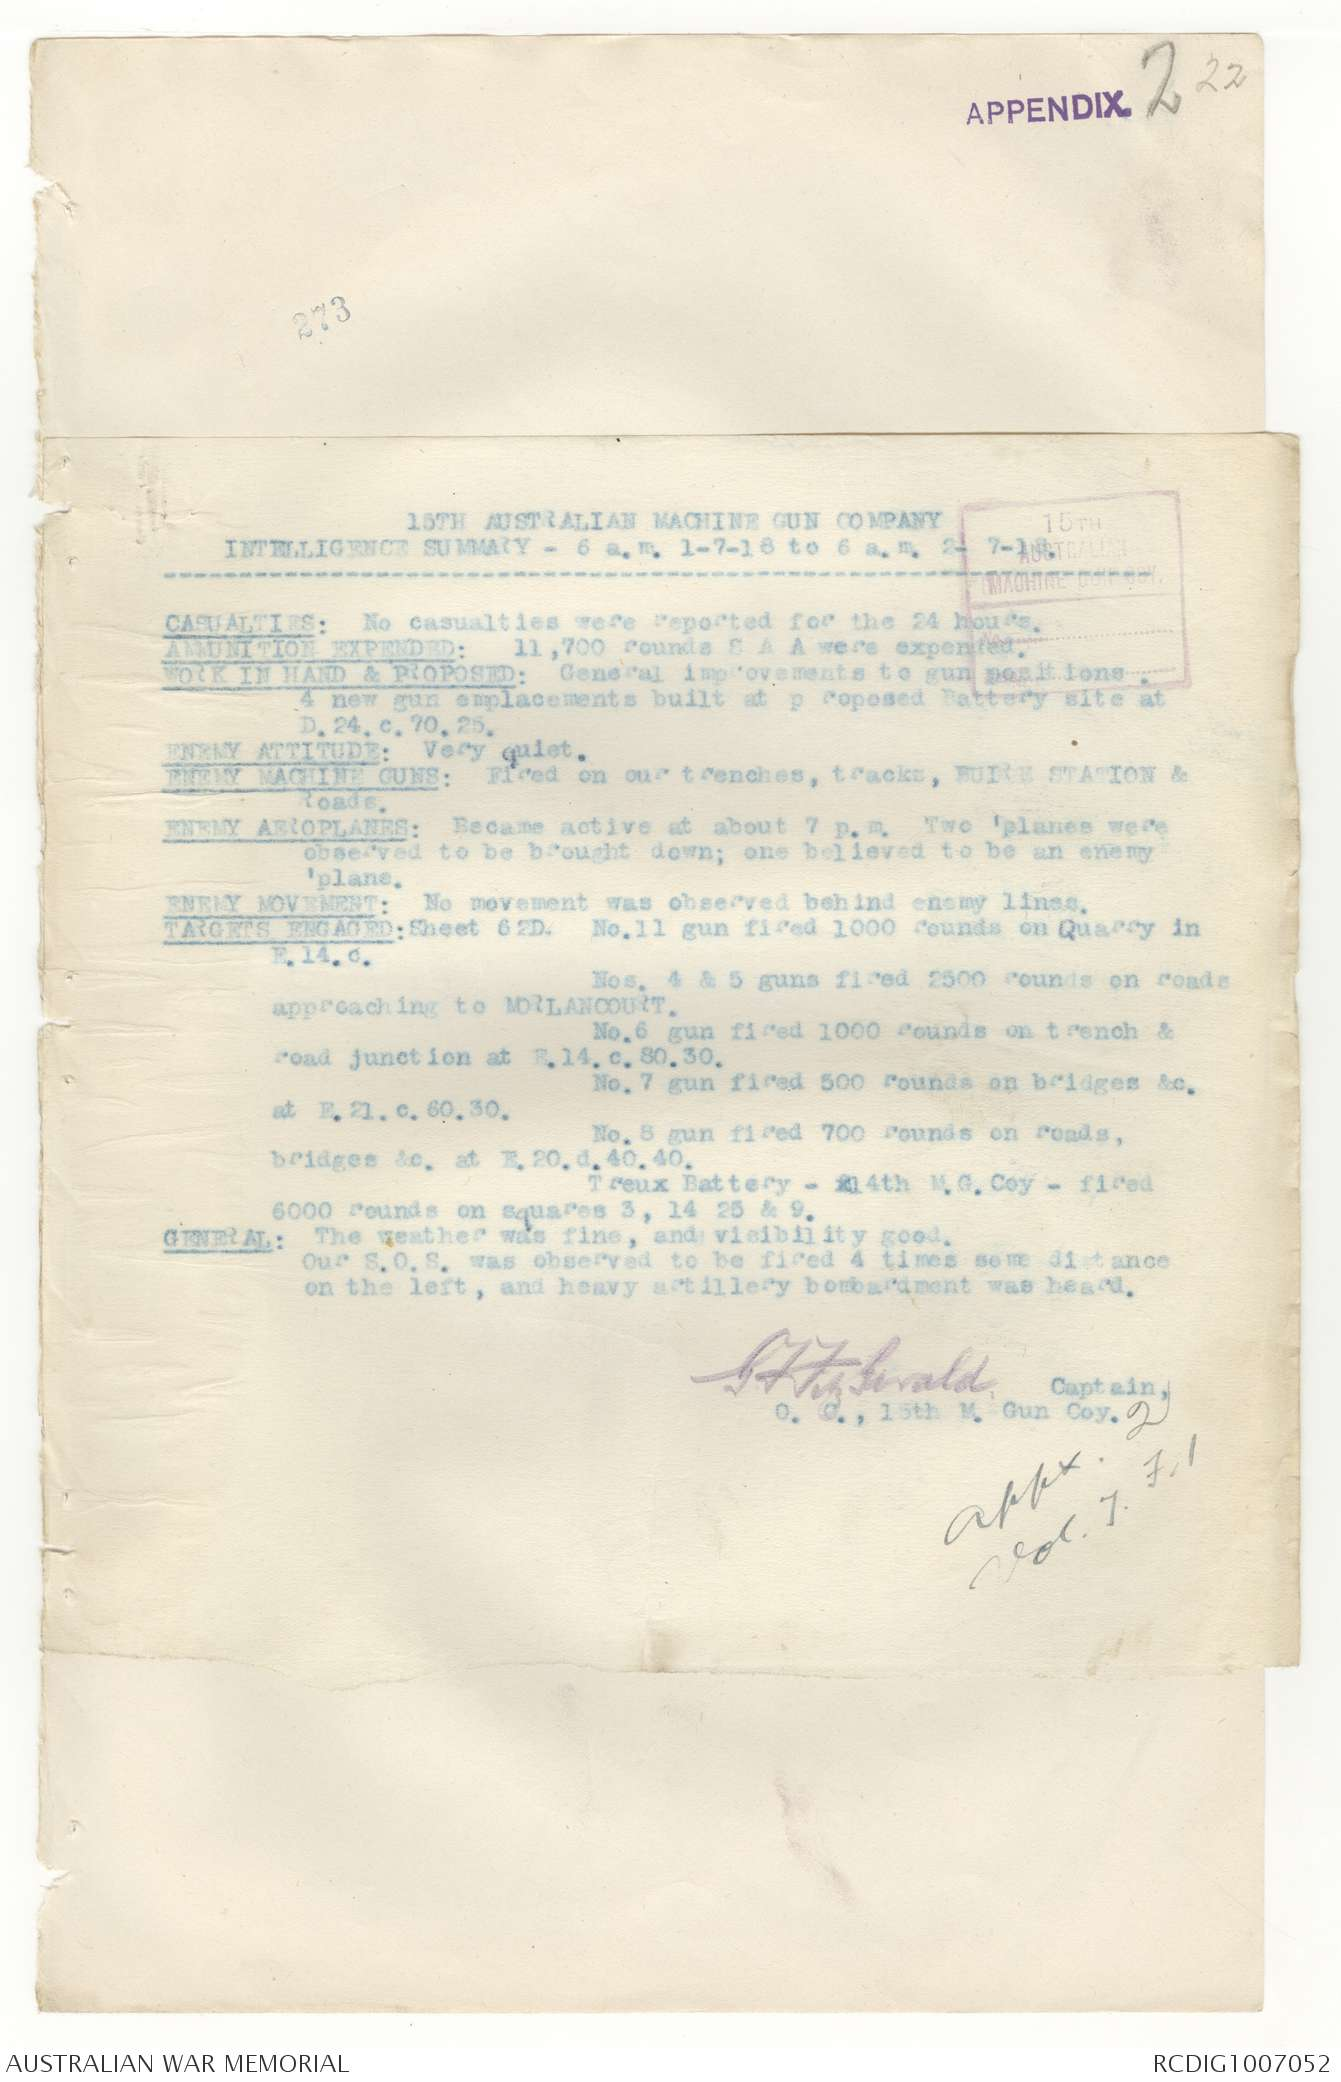 AWM4 24/20/29 PART 1 - July 1918 [includes appendices] | The